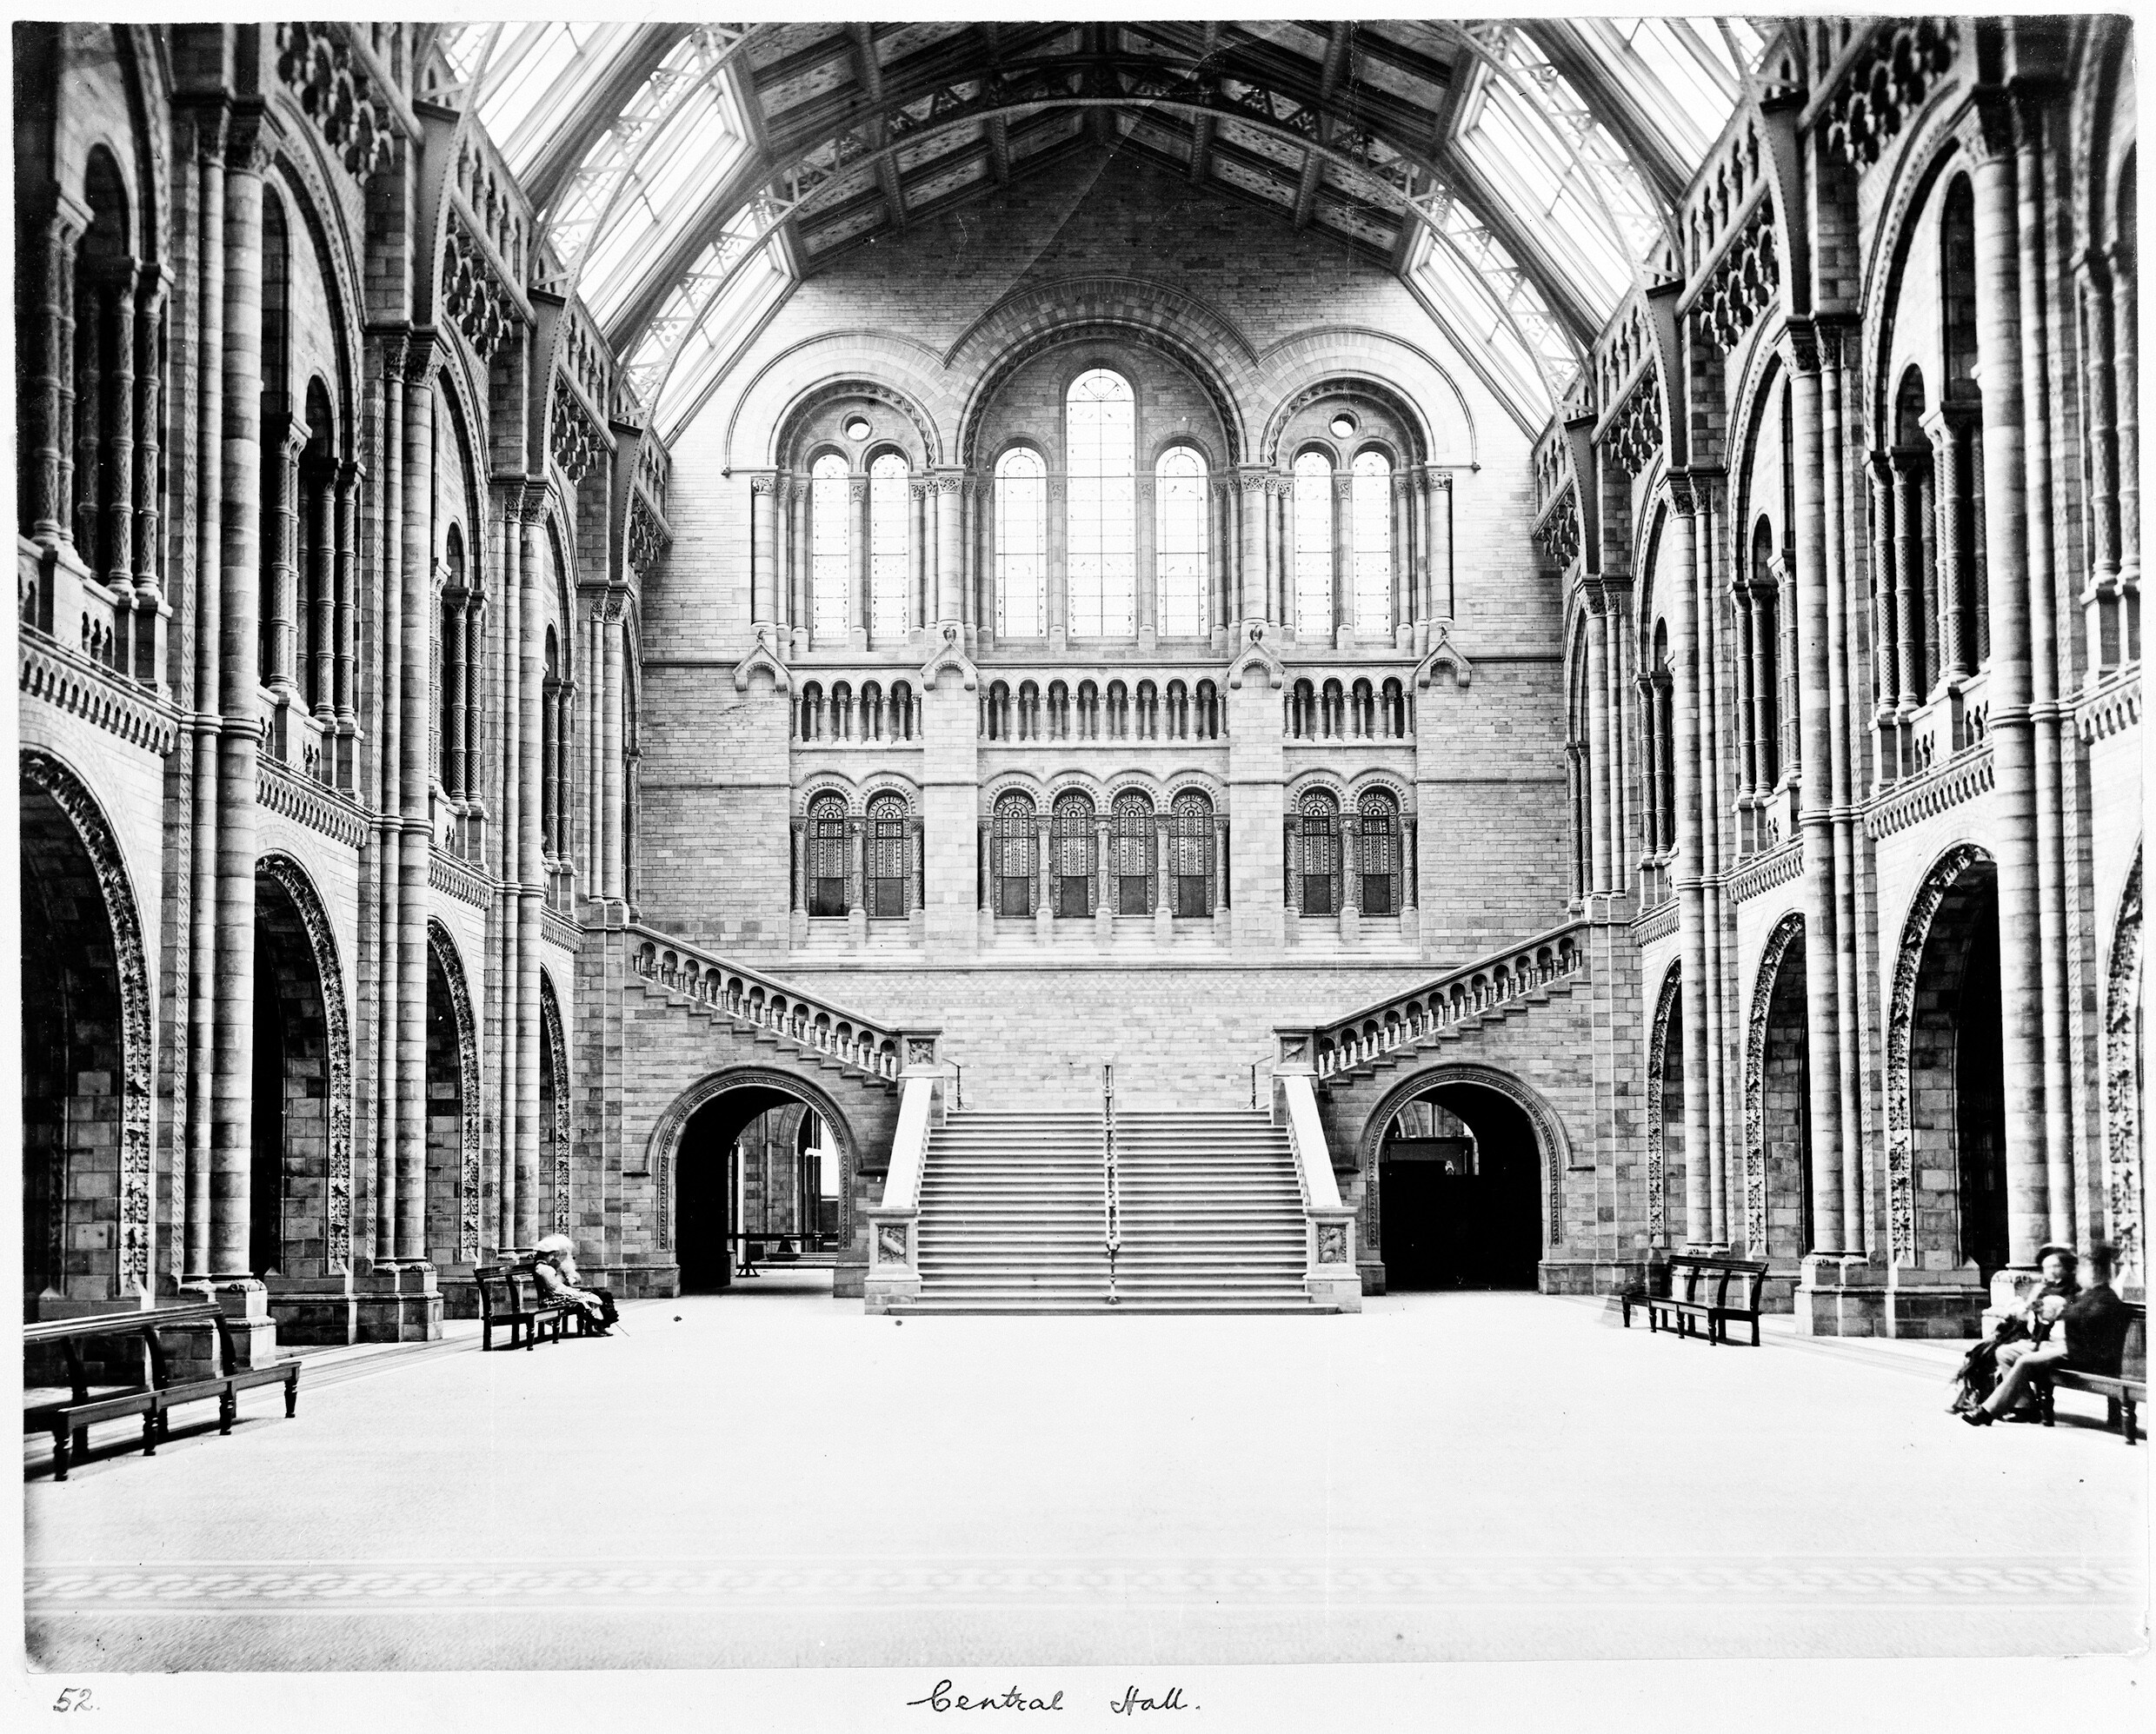 The Central Hall of the Natural History Museum